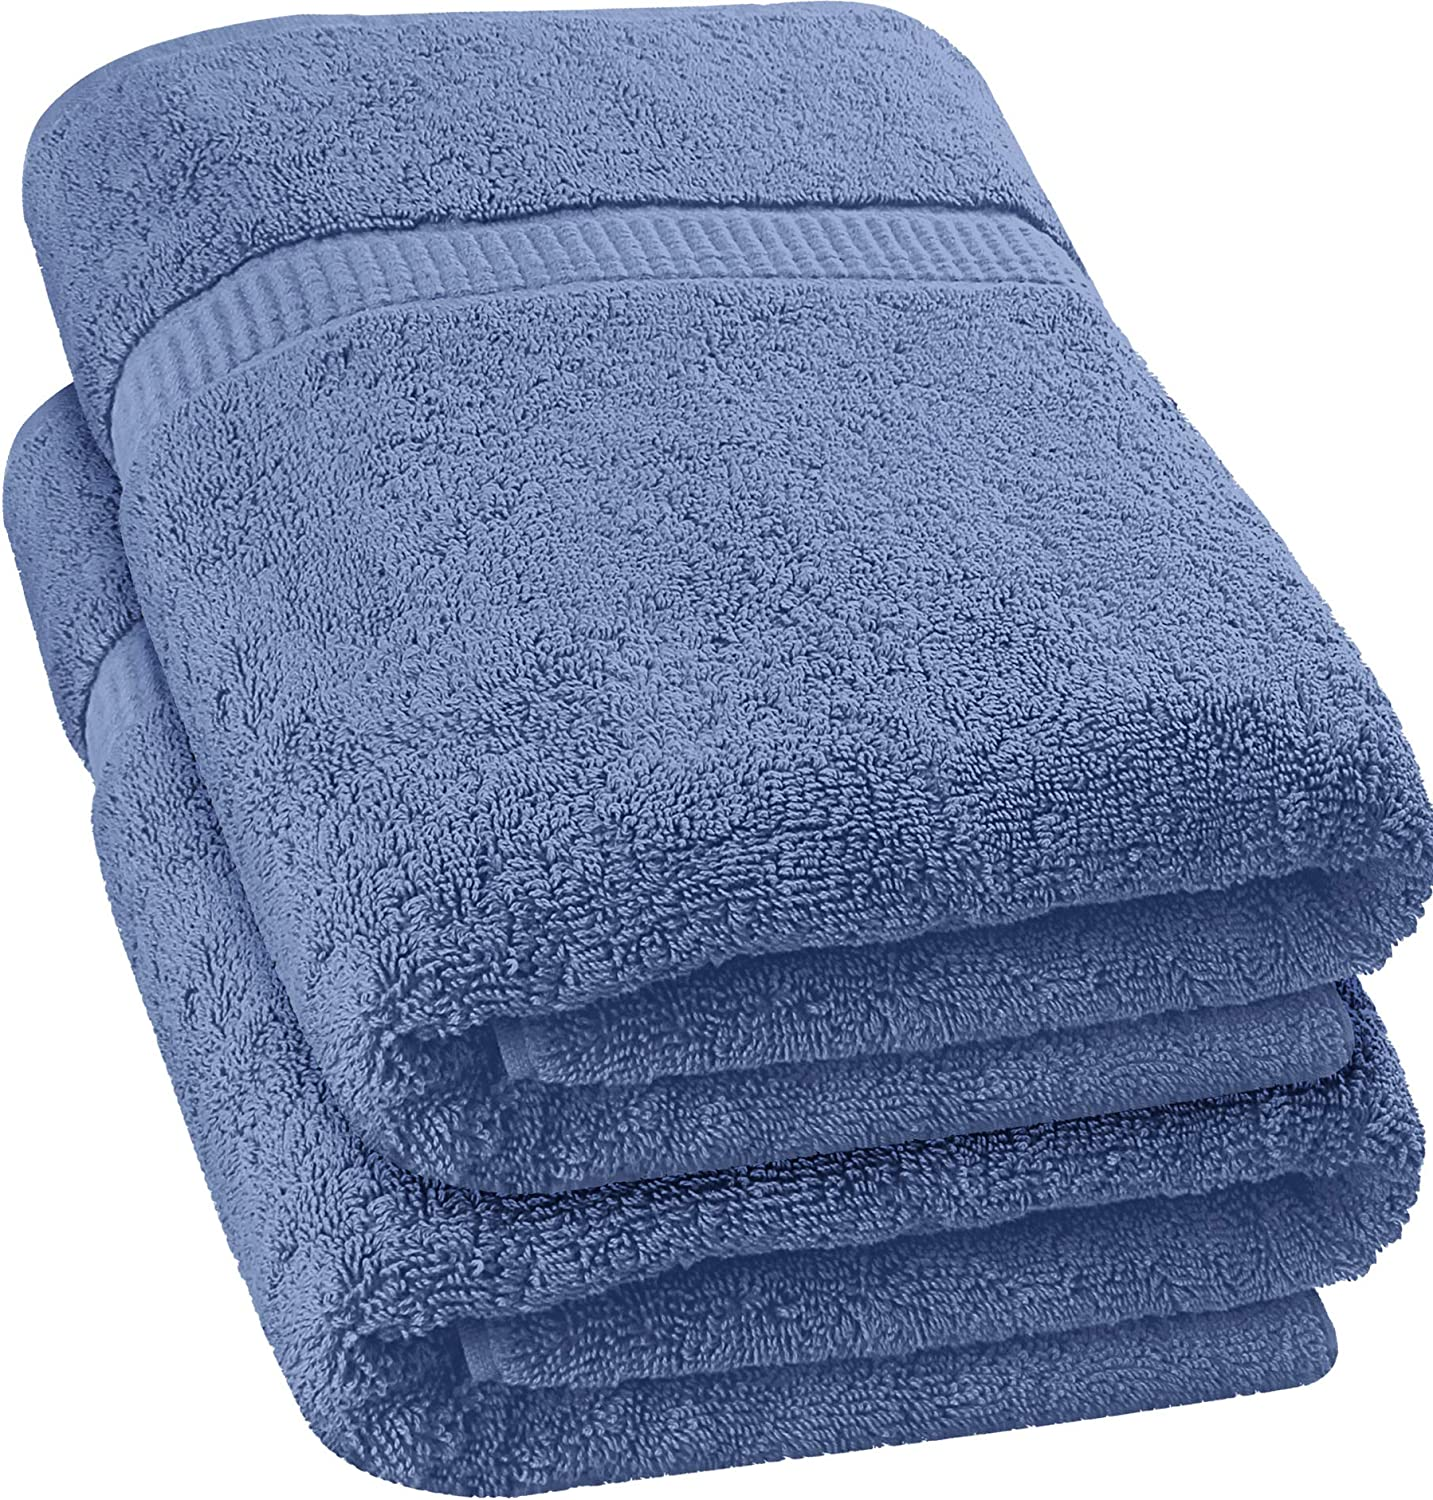 Utopia Towels Luxurious Jumbo Bath Sheet (35 x 70 Inches, Electric Blue) - 600 GSM 100% Ring Spun Cotton Highly Absorbent and Quick Dry Extra Large Bath Towel - Super Soft Hotel Quality Towel (2-Pack)